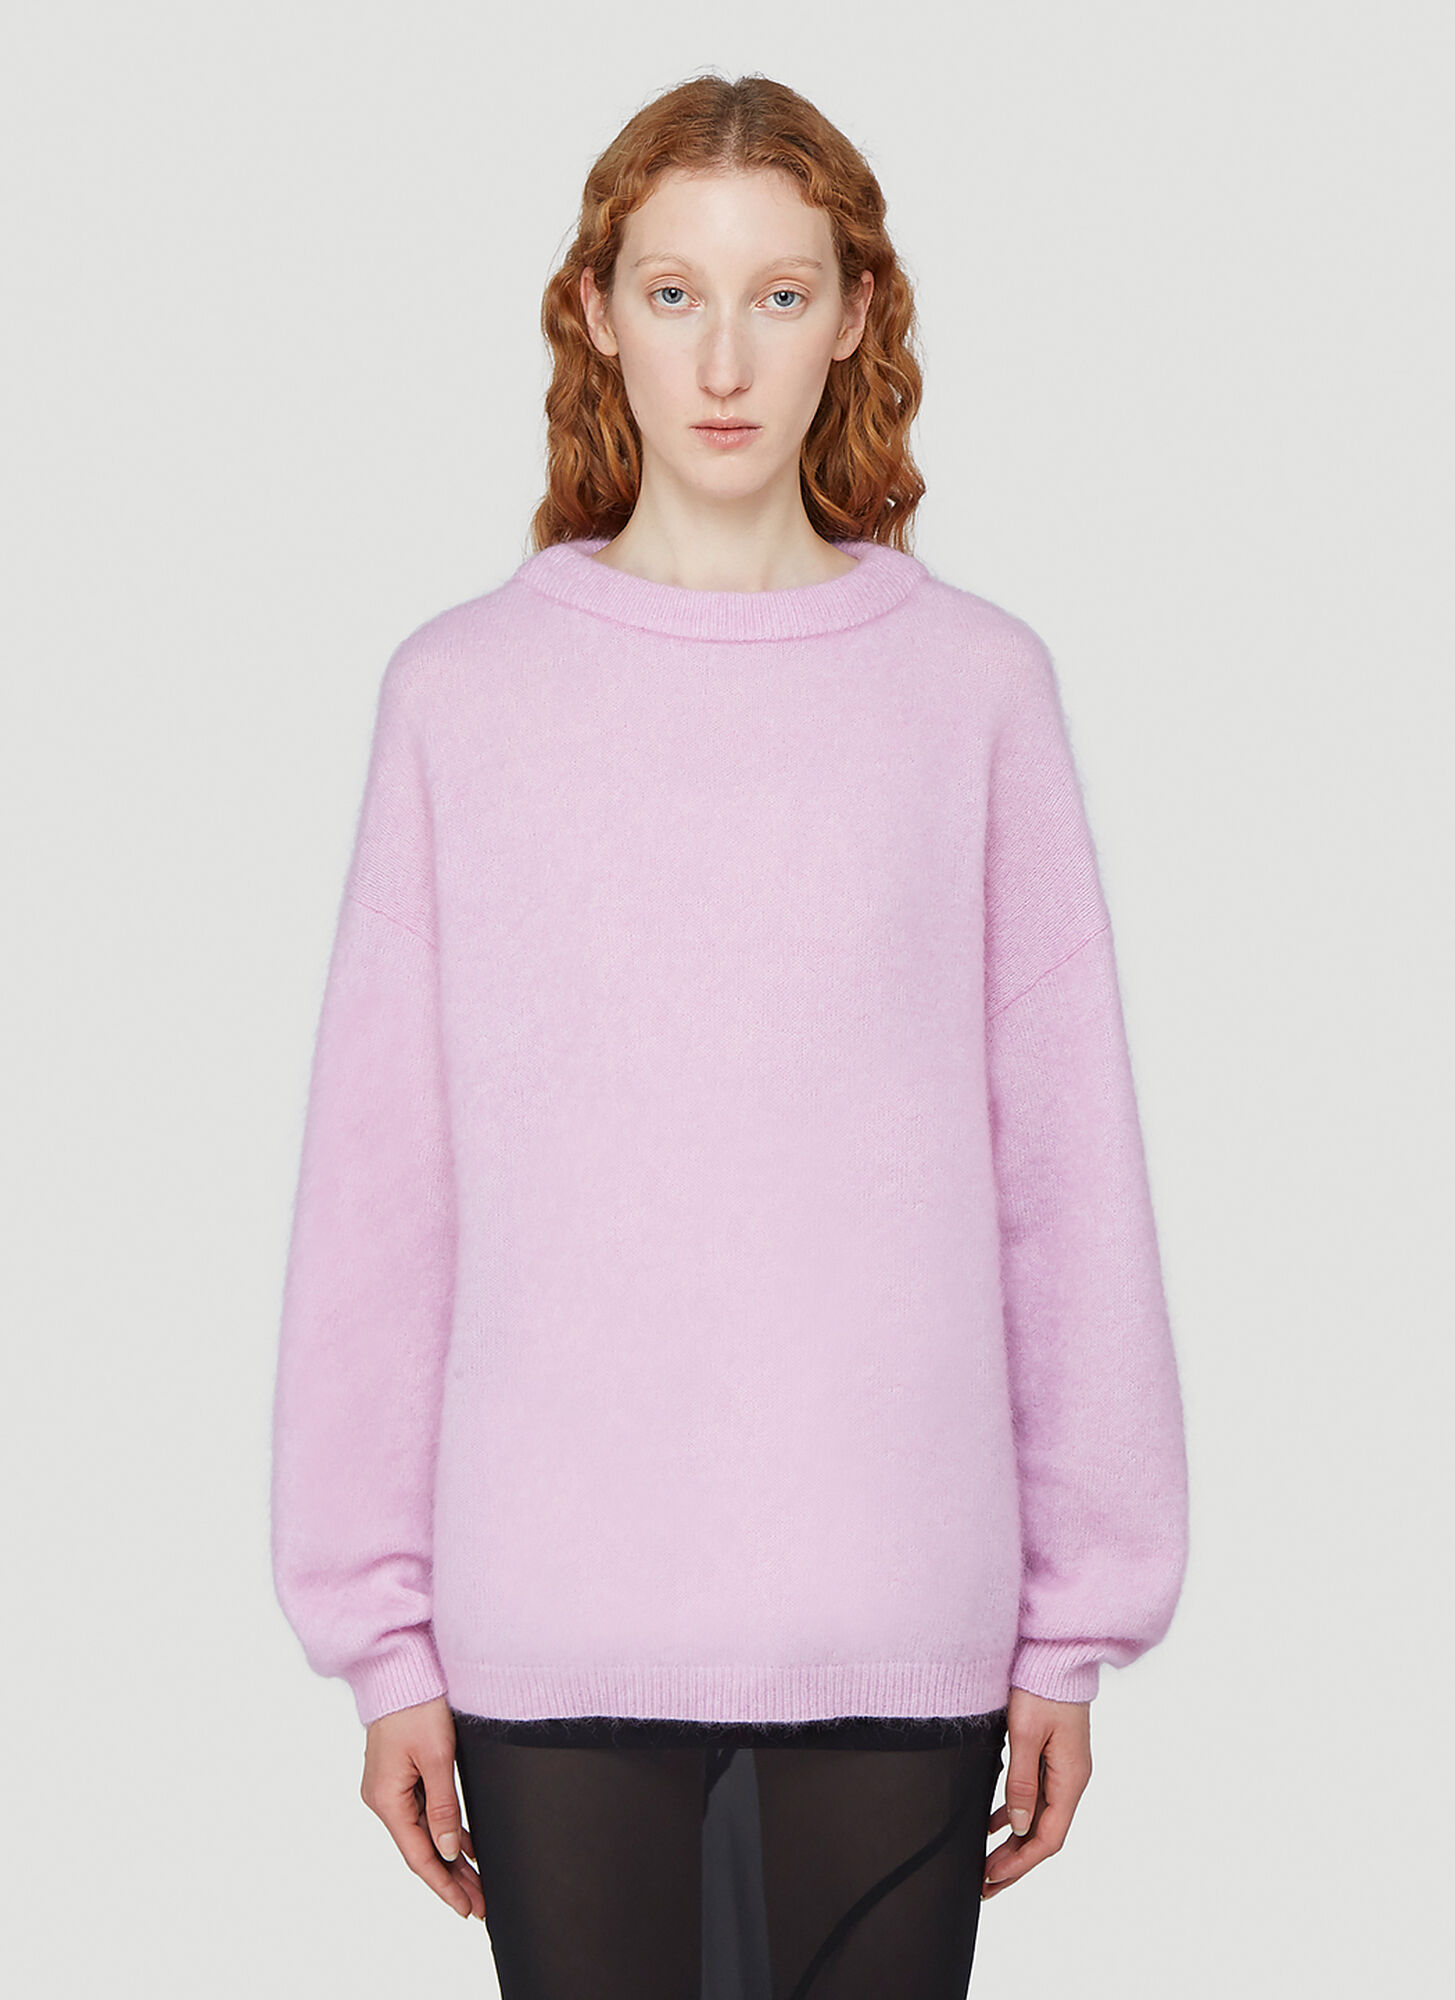 Acne Studios Tactile-Knit Sweater in Pink